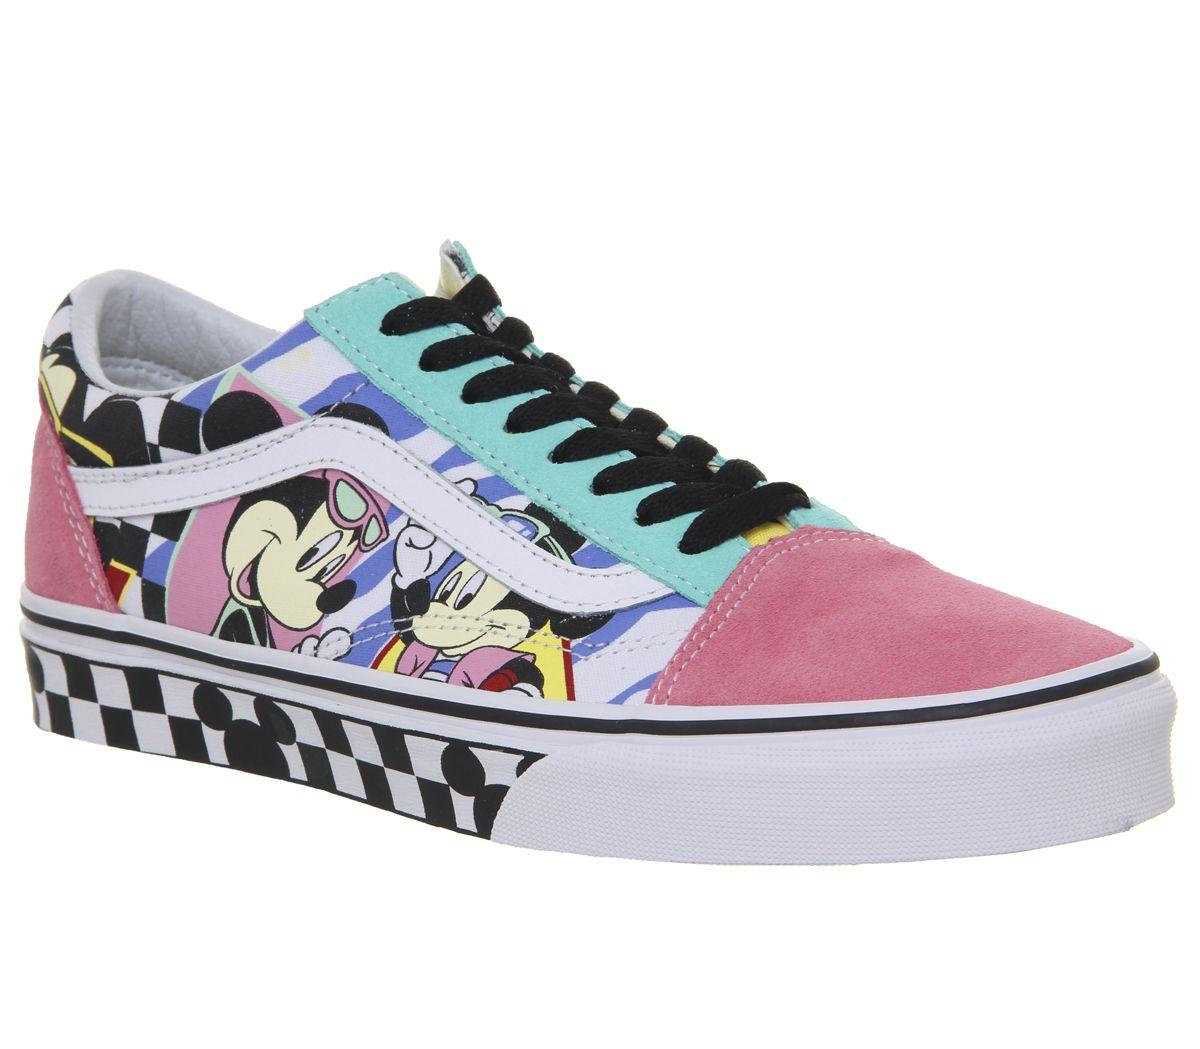 fd31f4583e4 Lyst - Vans Old Skool Trainers for Men - Save 35%